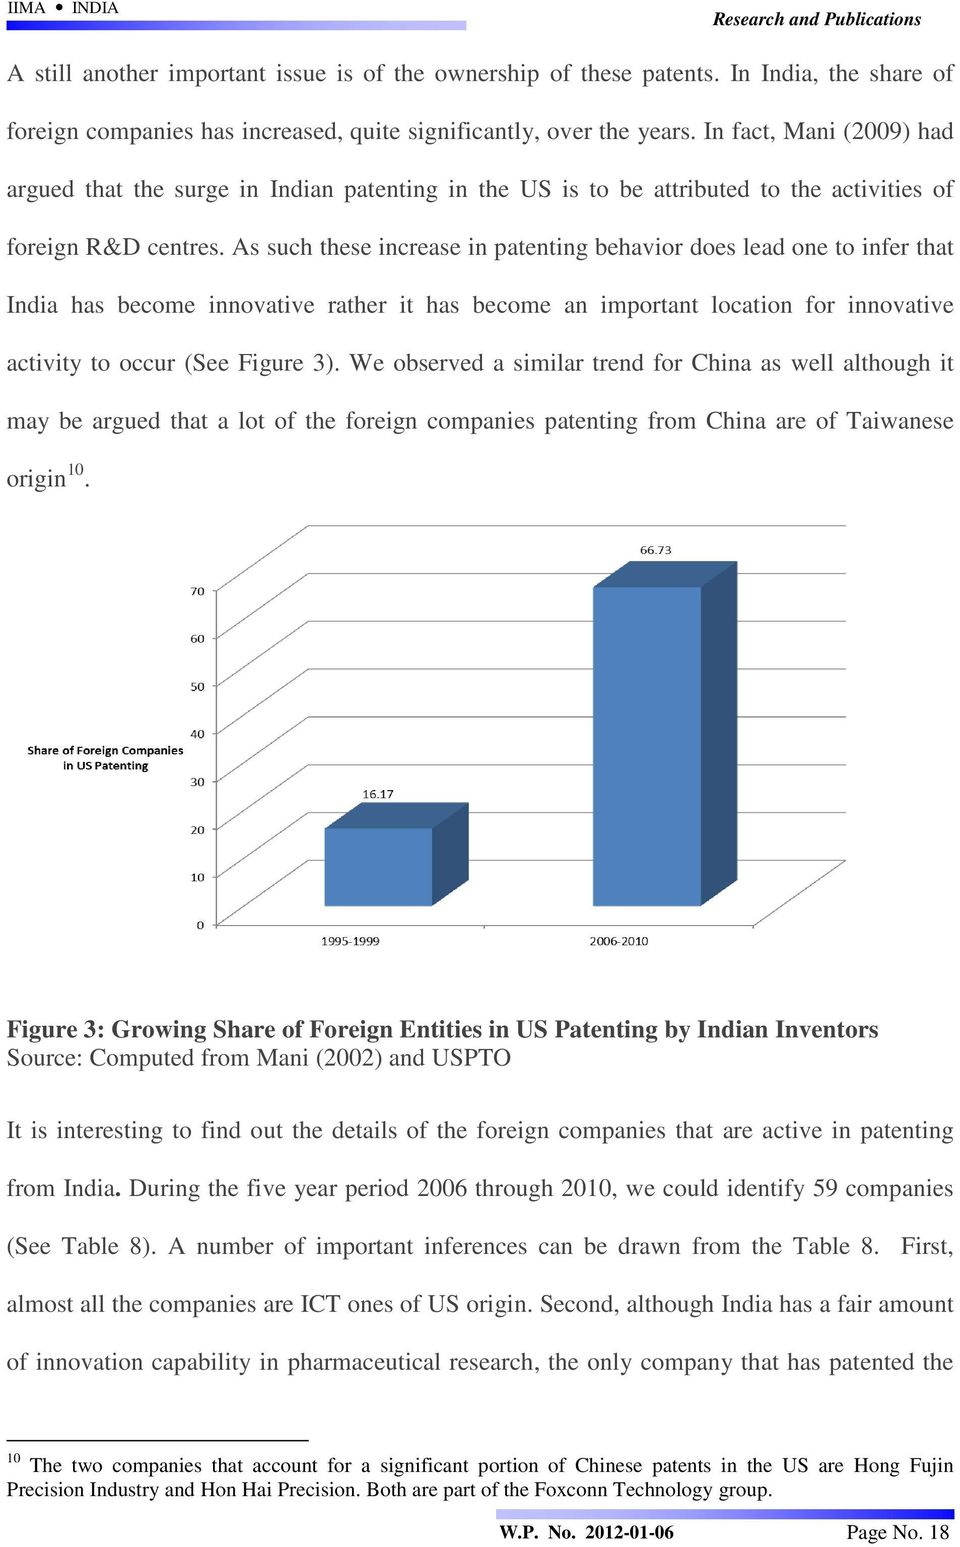 As such these increase in patenting behavior does lead one to infer that India has become innovative rather it has become an important location for innovative activity to occur (See Figure 3).